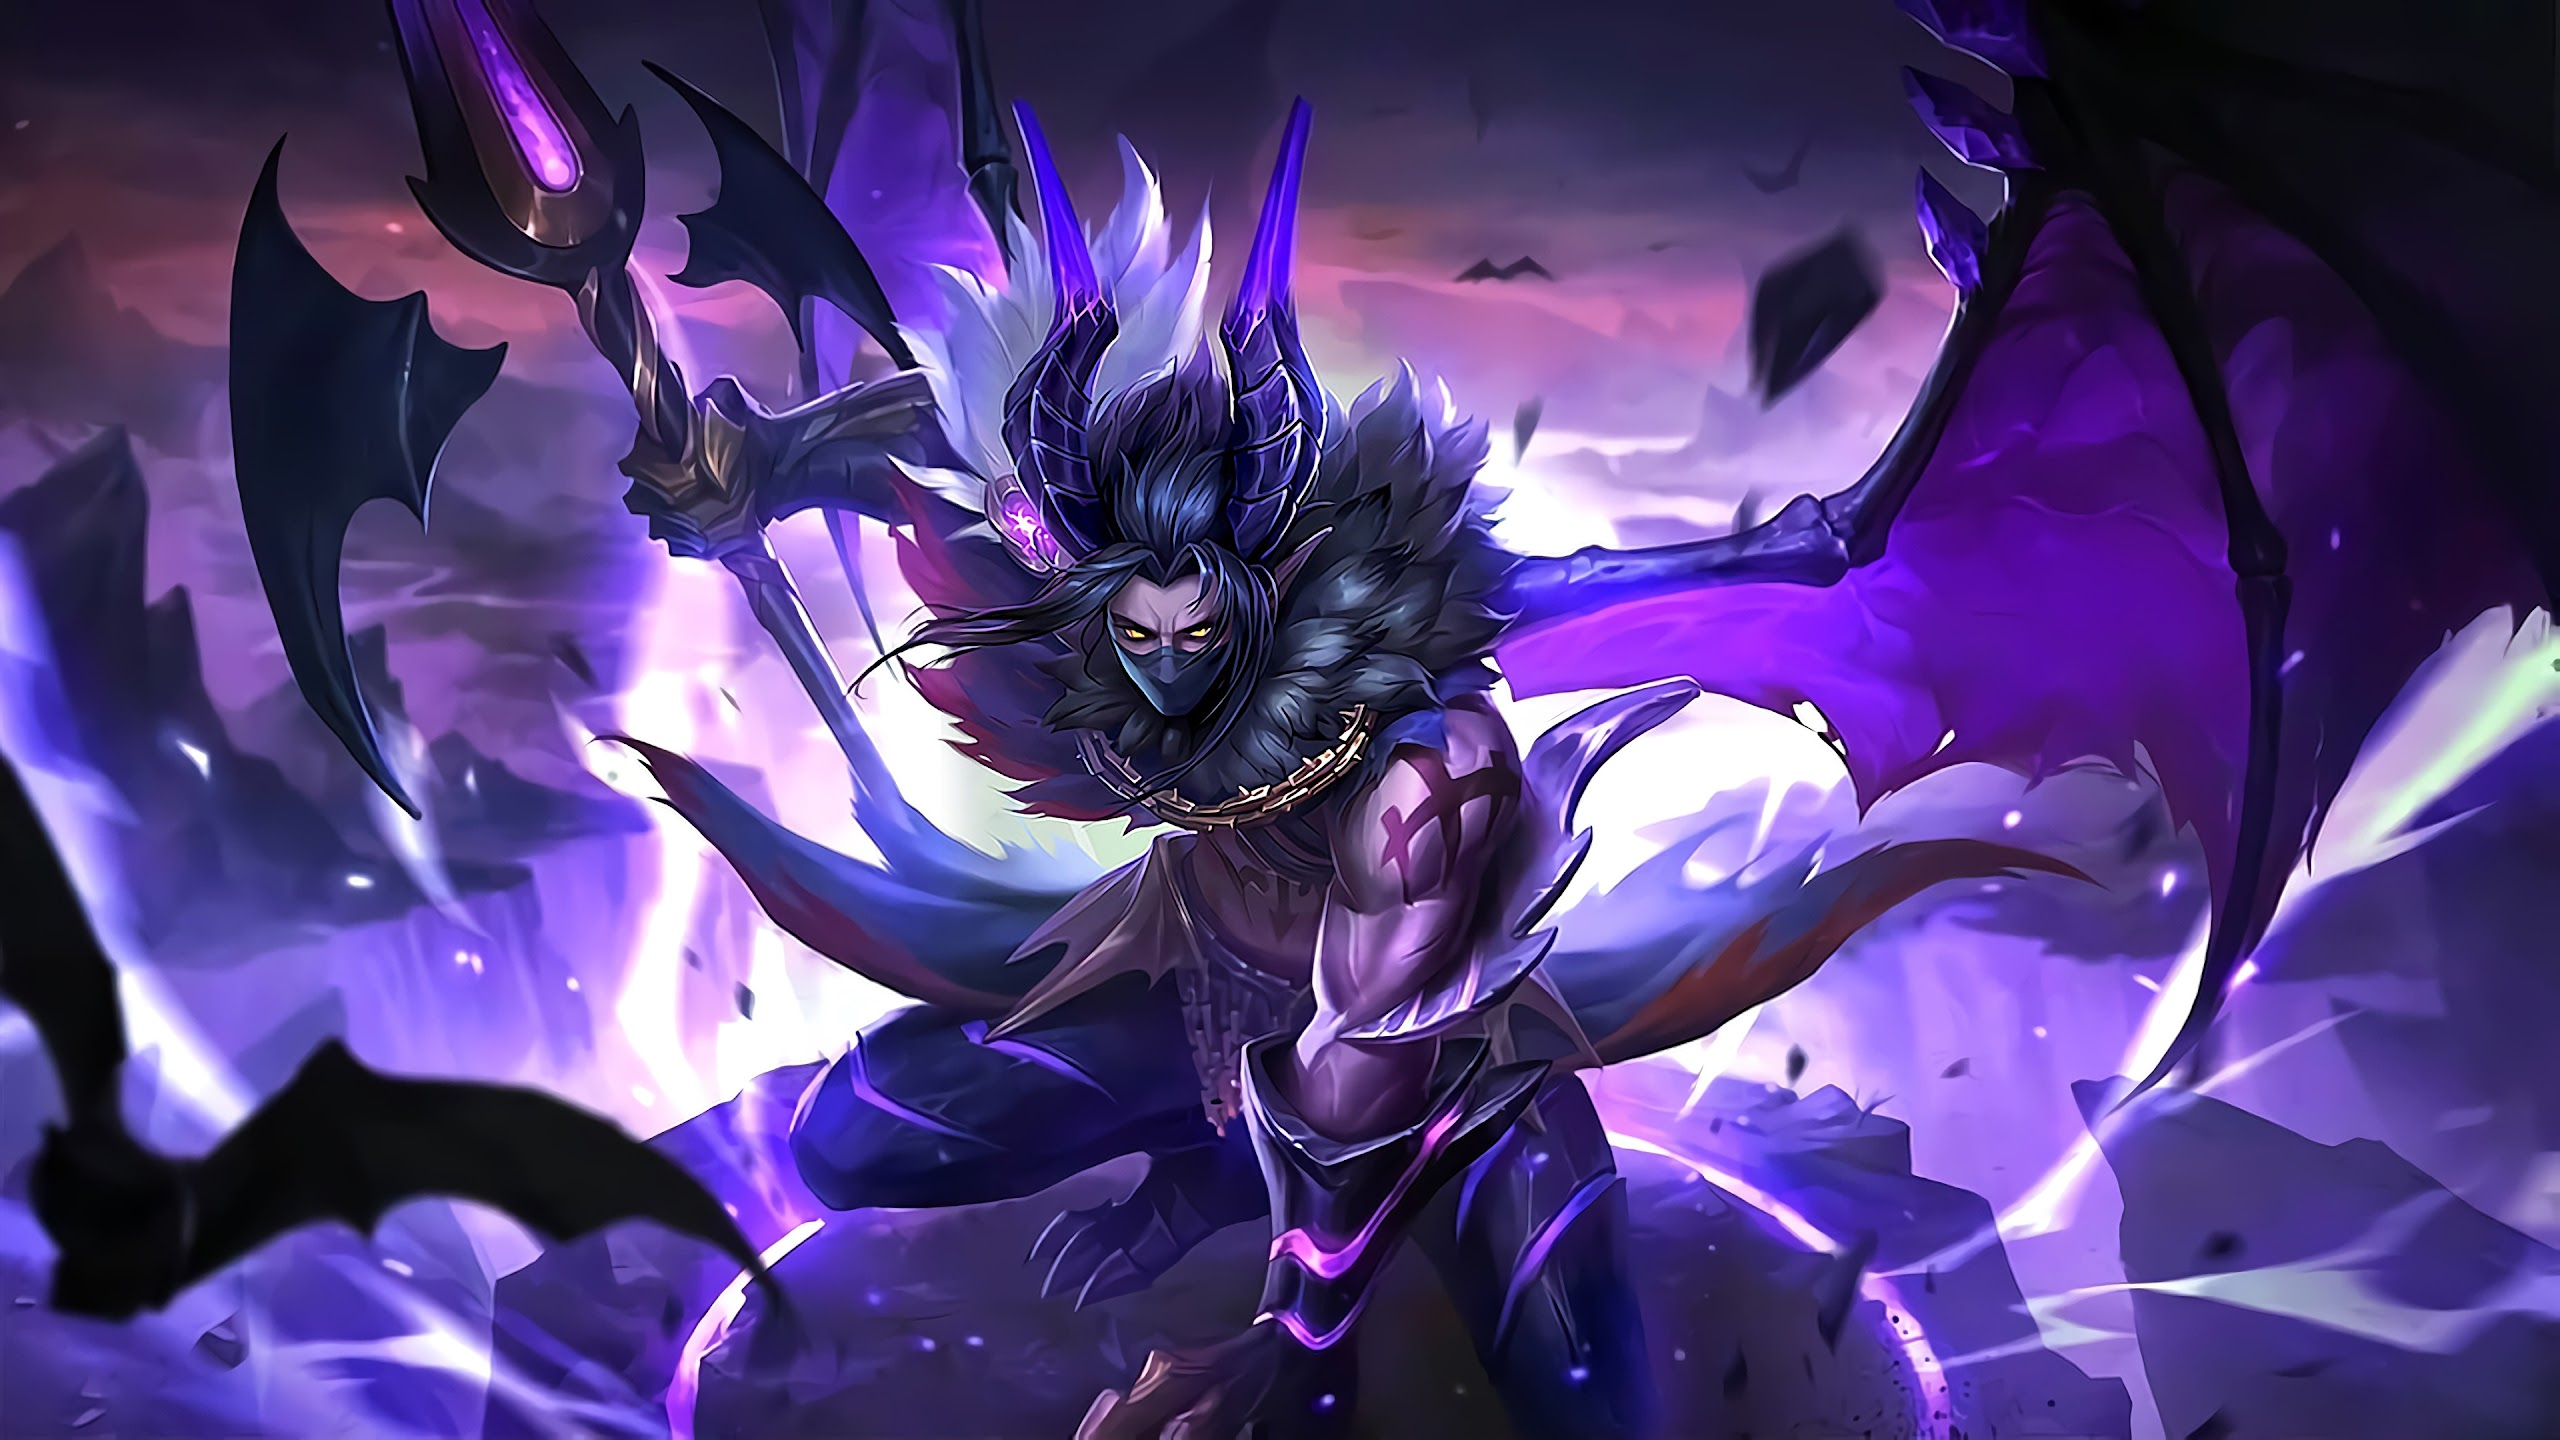 Moskov Twilight Dragon Skin Mobile Legends 4K Wallpaper #139